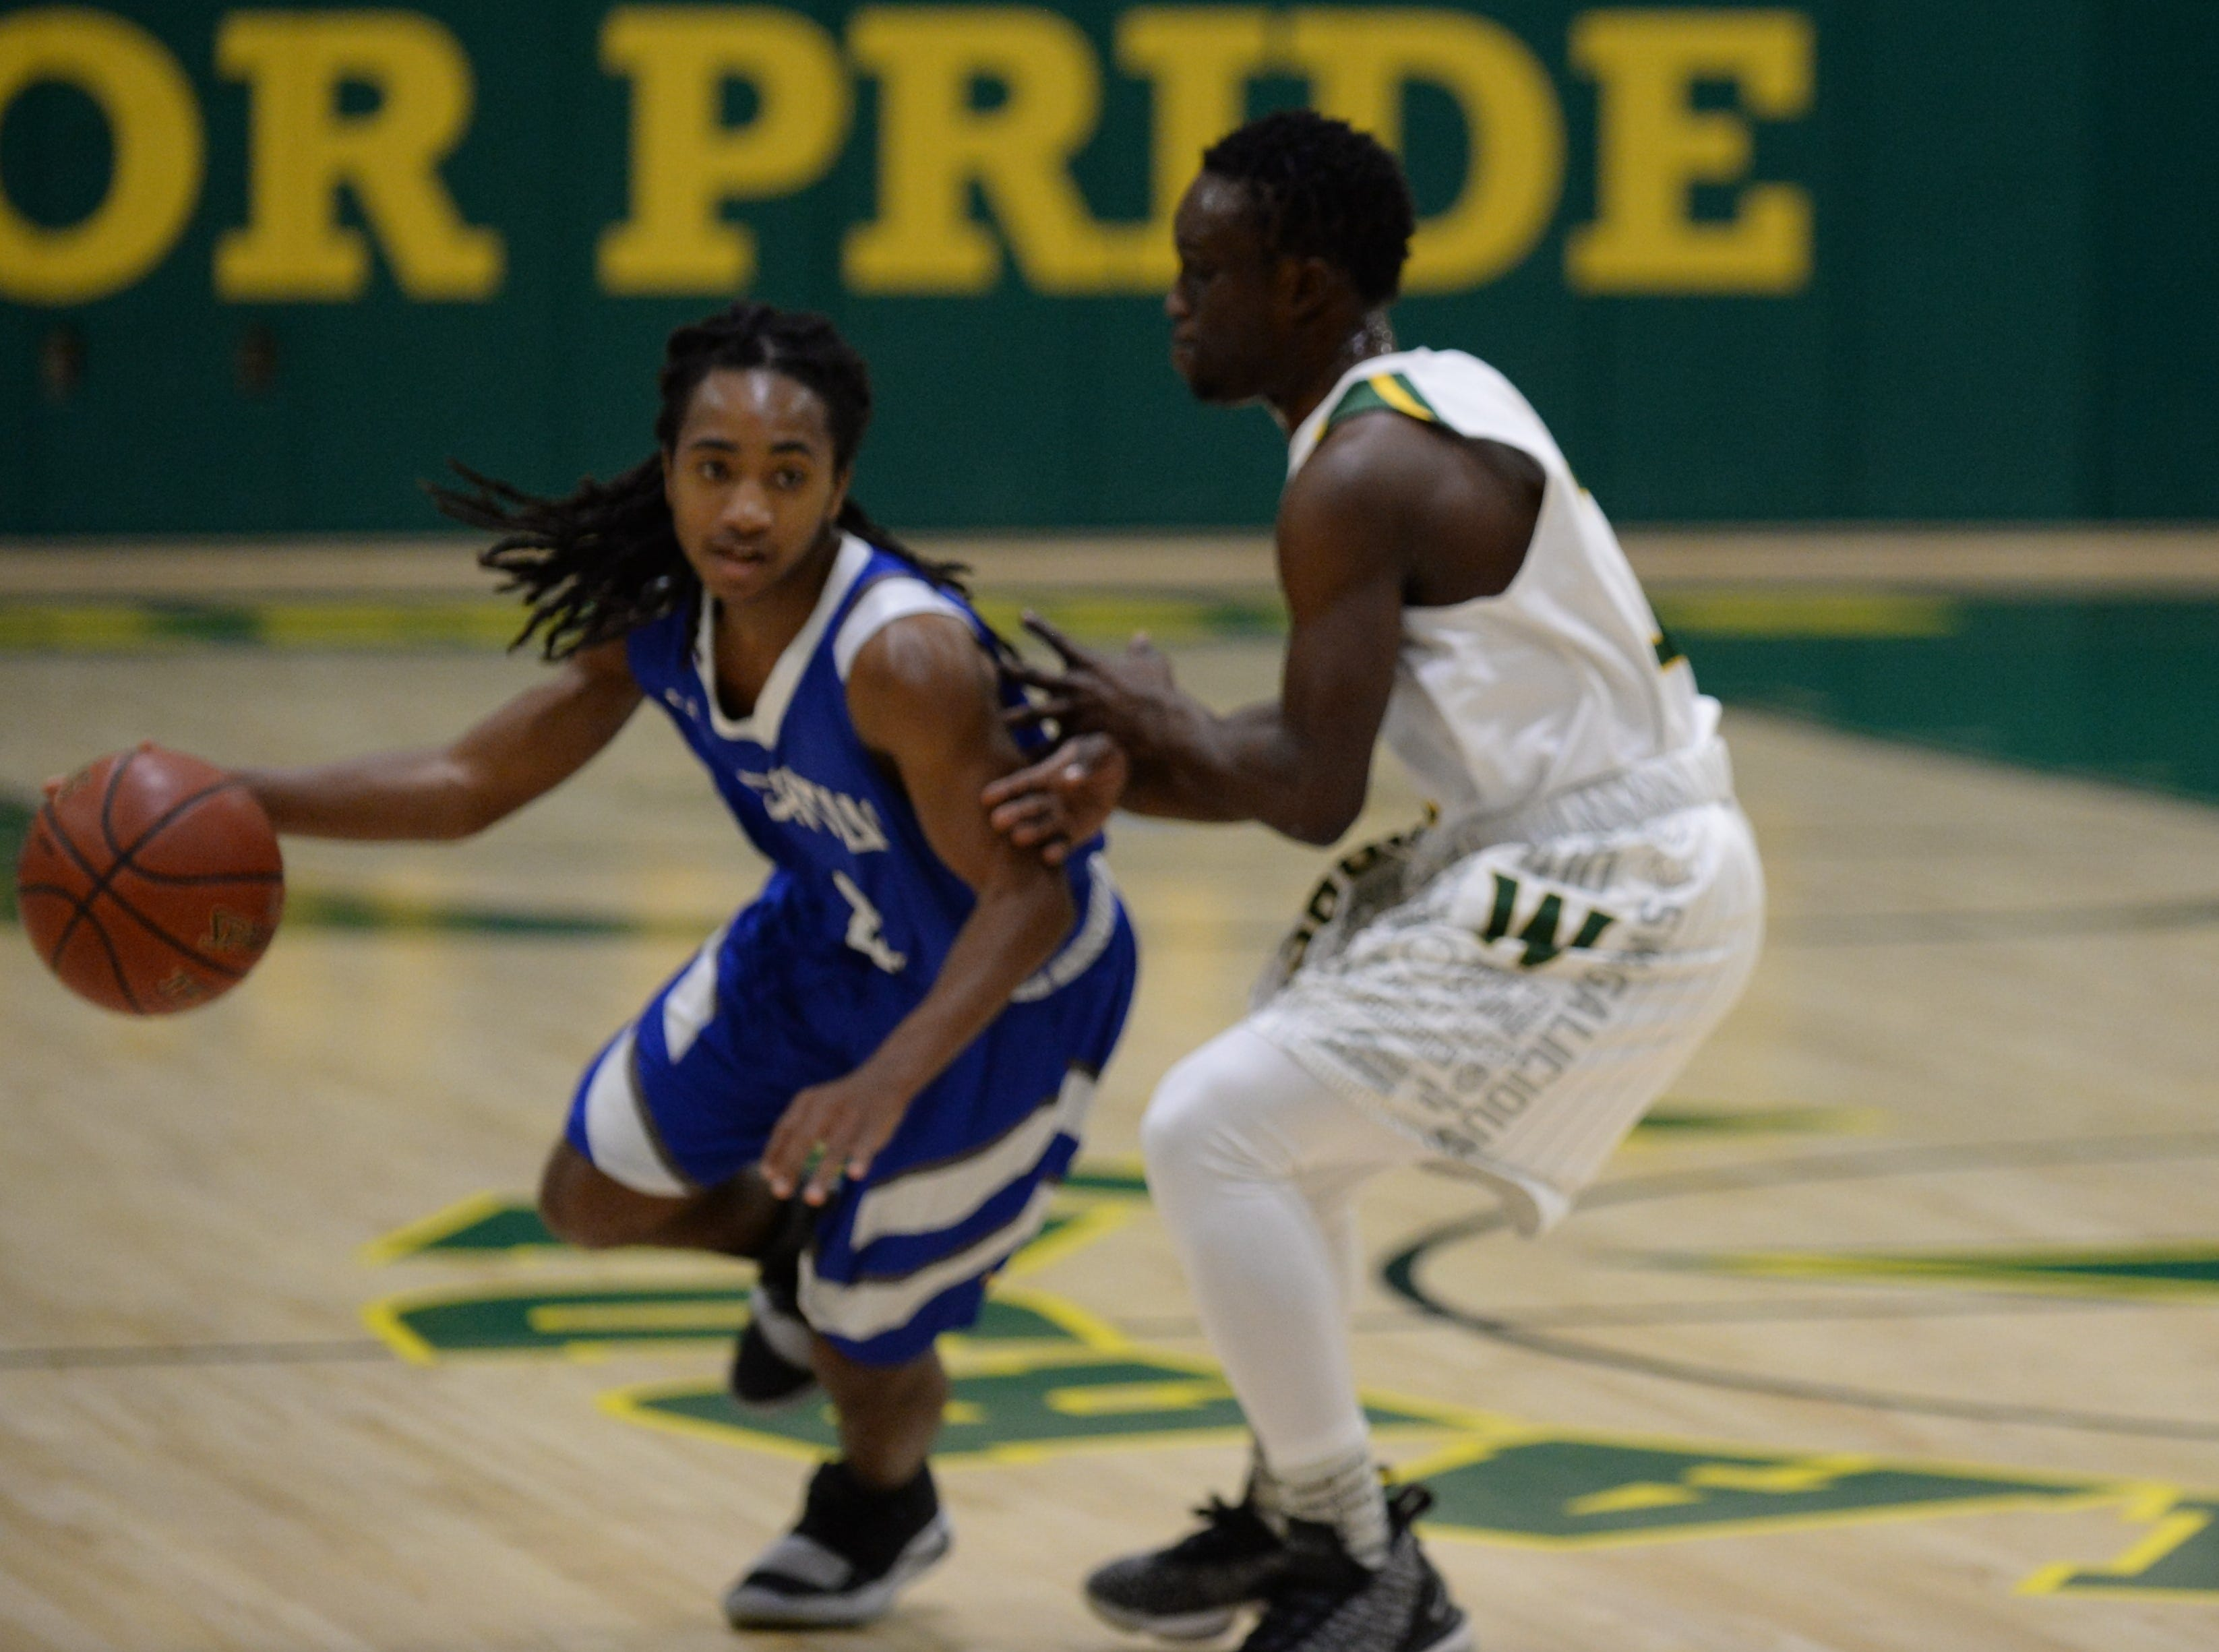 Stephen Decatur's Antonio Collins maneuvers around a Mardela defender on Tuesday, Feb. 5, 2019.